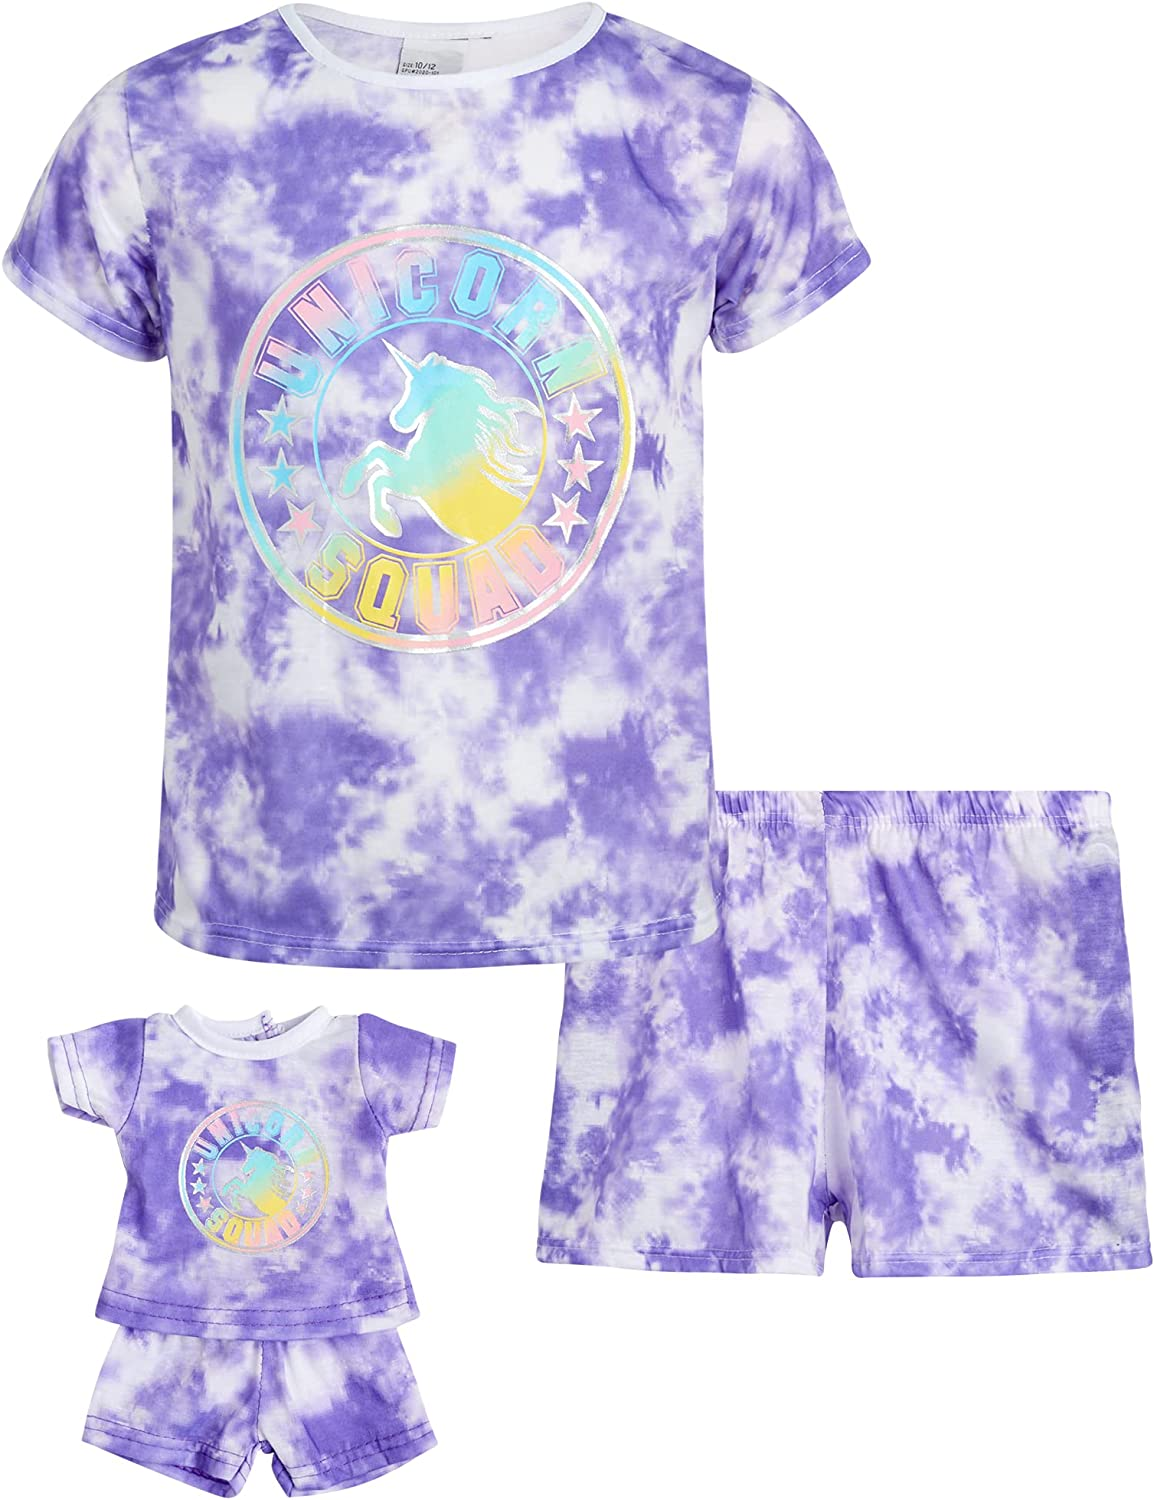 BFF & Me Girls' Pajama Set - 2 Piece T-Shirt and Sleep Shorts with Matching Doll Nightgown, Size S(6/6X), Purple Tie Dye Squad